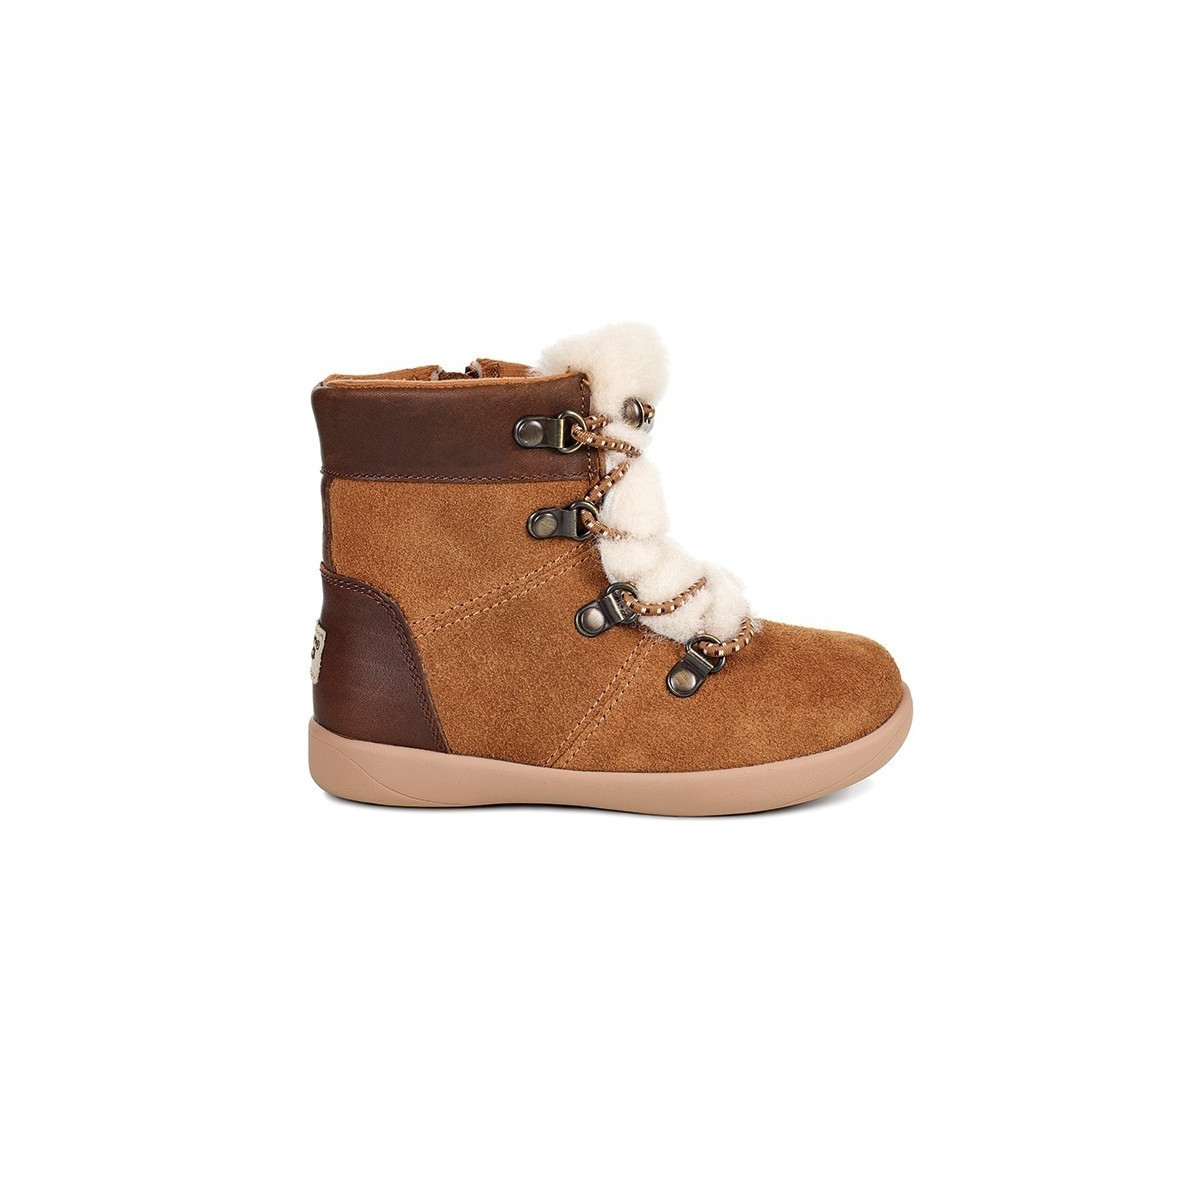 Boots Ugg Ager Chesnut